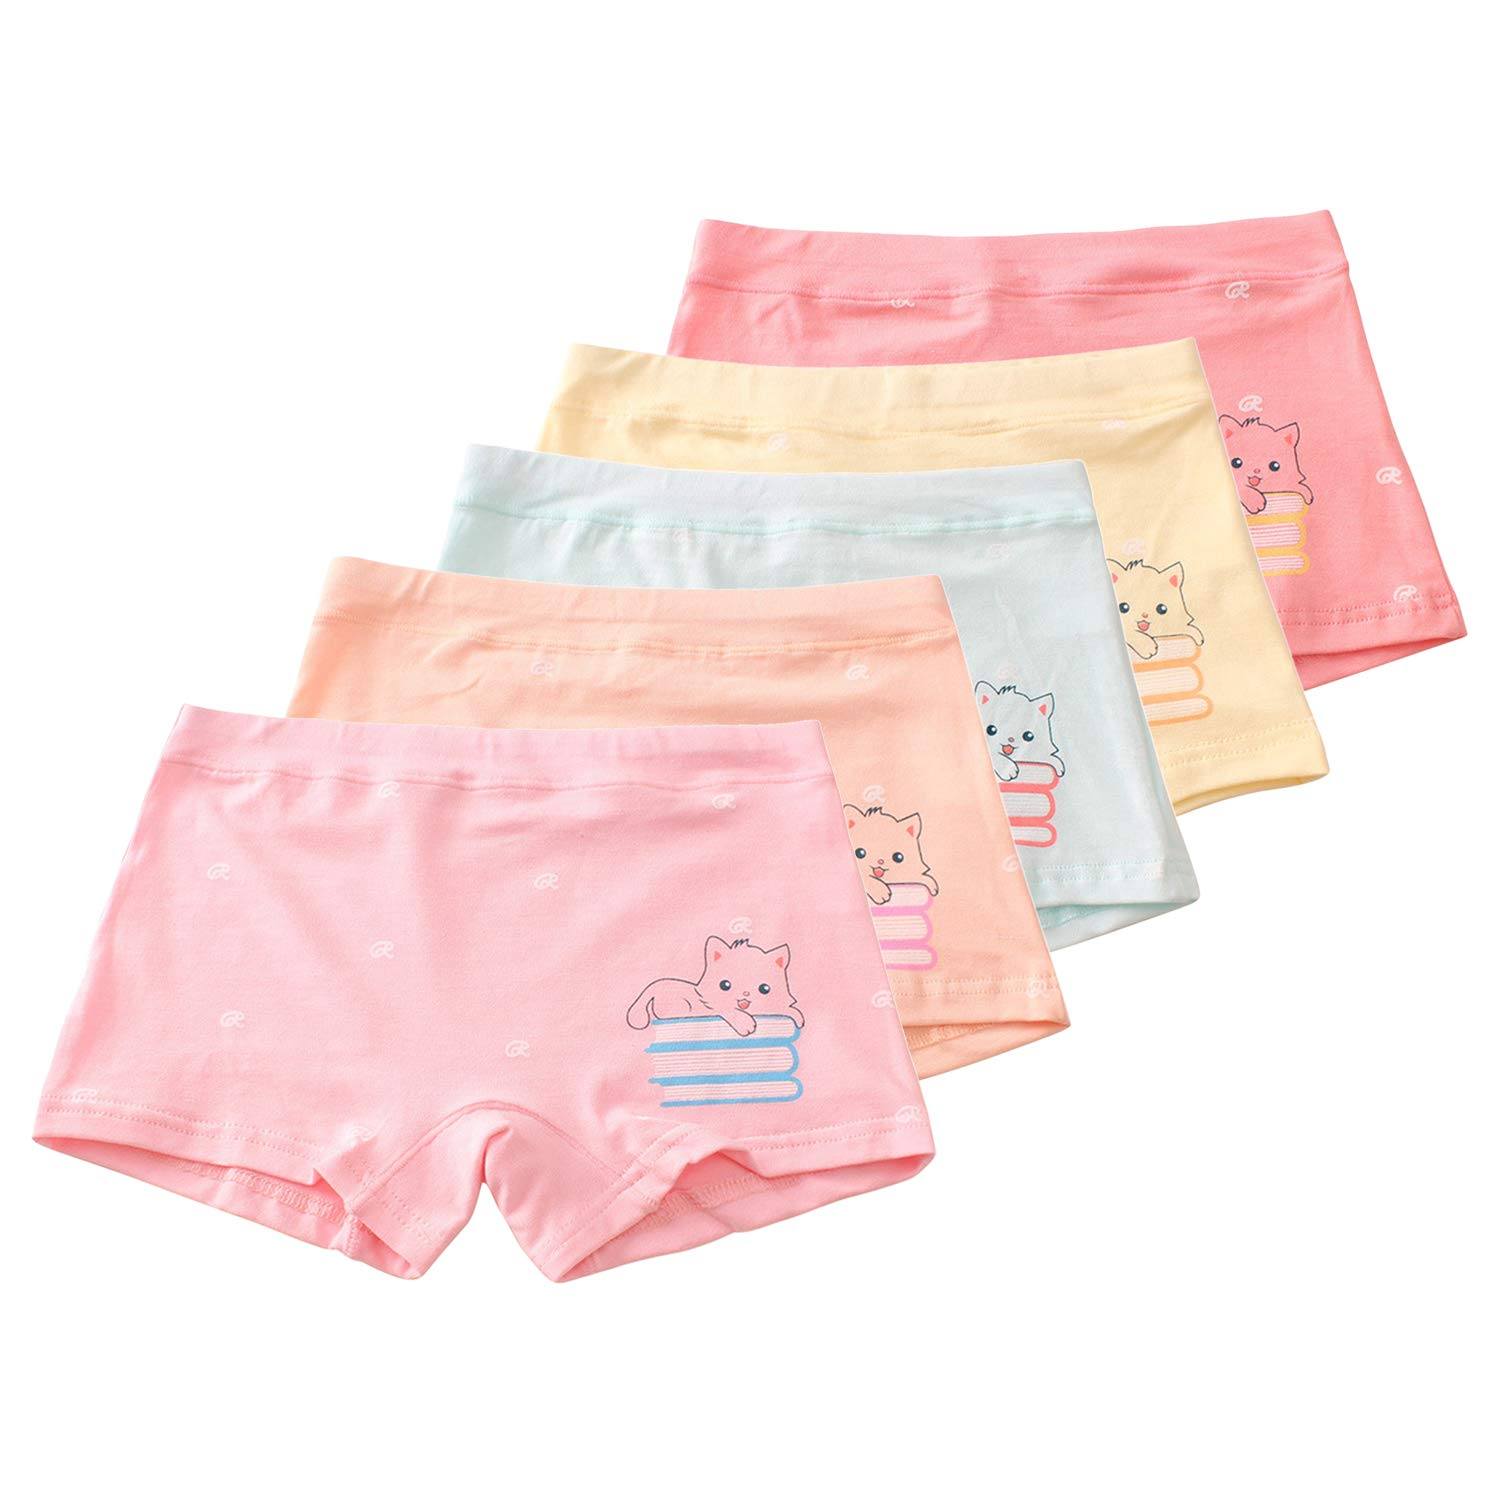 Different Motifs Sizes 2-13 Years Pack of 10 LOREZA /® 10 Pack Girls Briefs Underwear Cotton